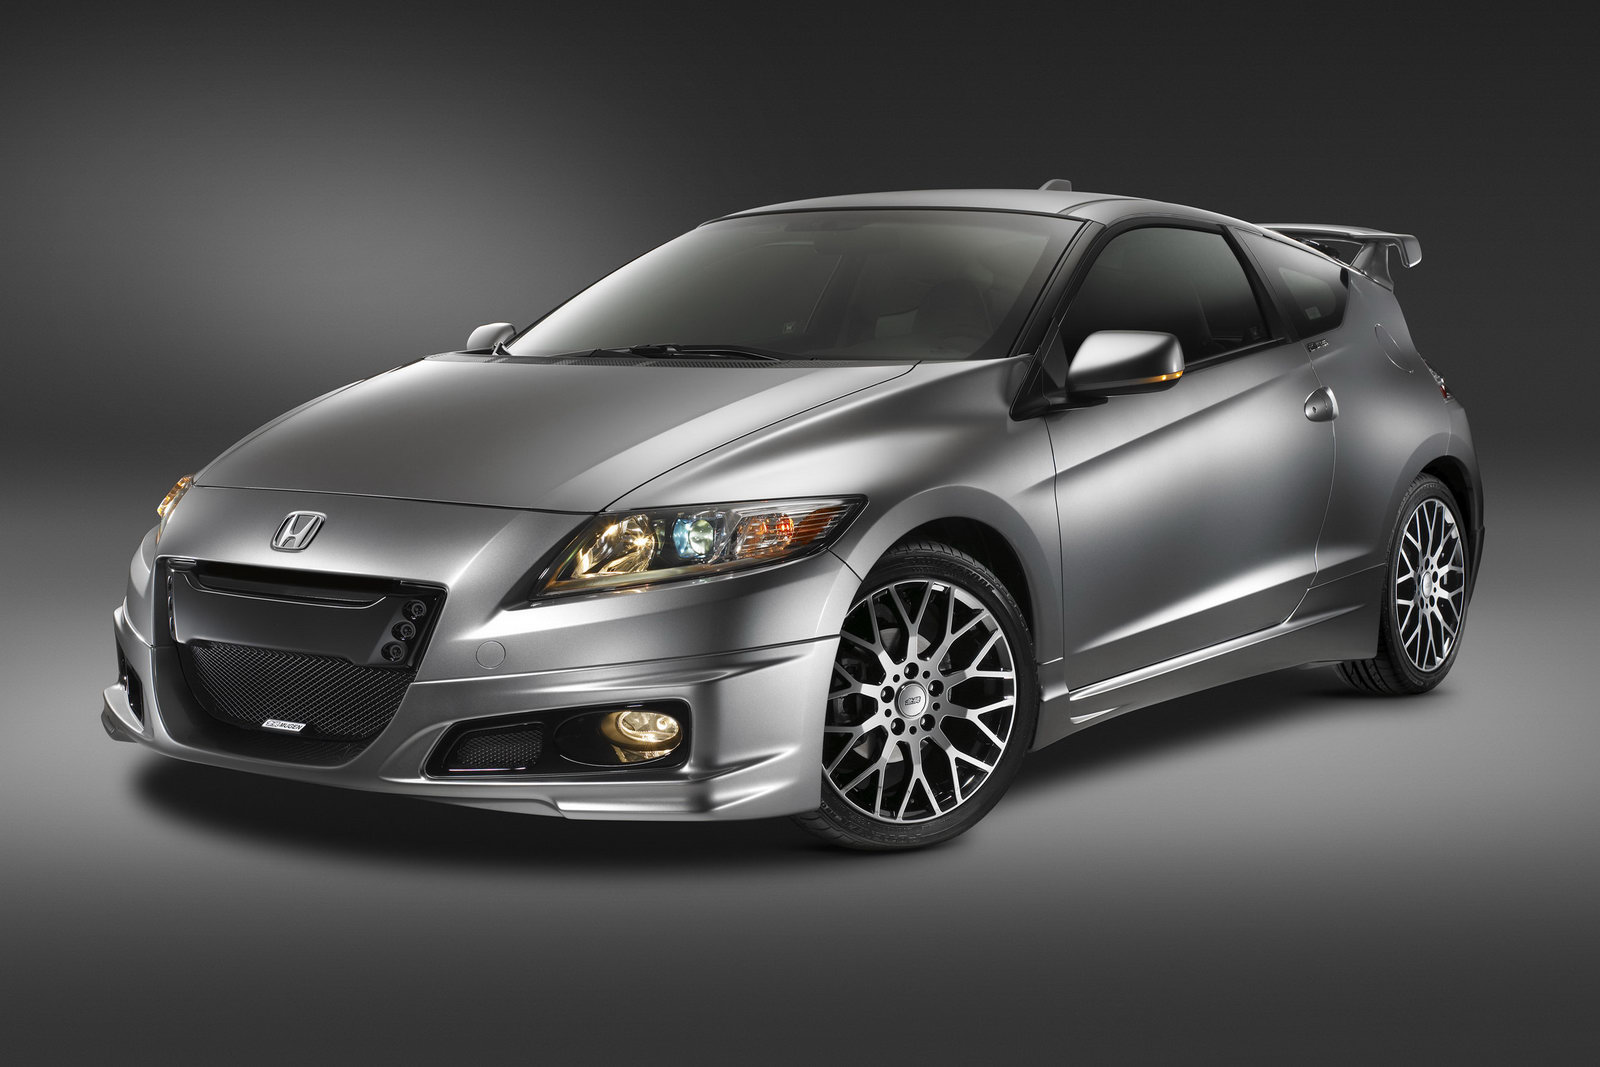 2010 sema honda cr z mugen autoevolution. Black Bedroom Furniture Sets. Home Design Ideas